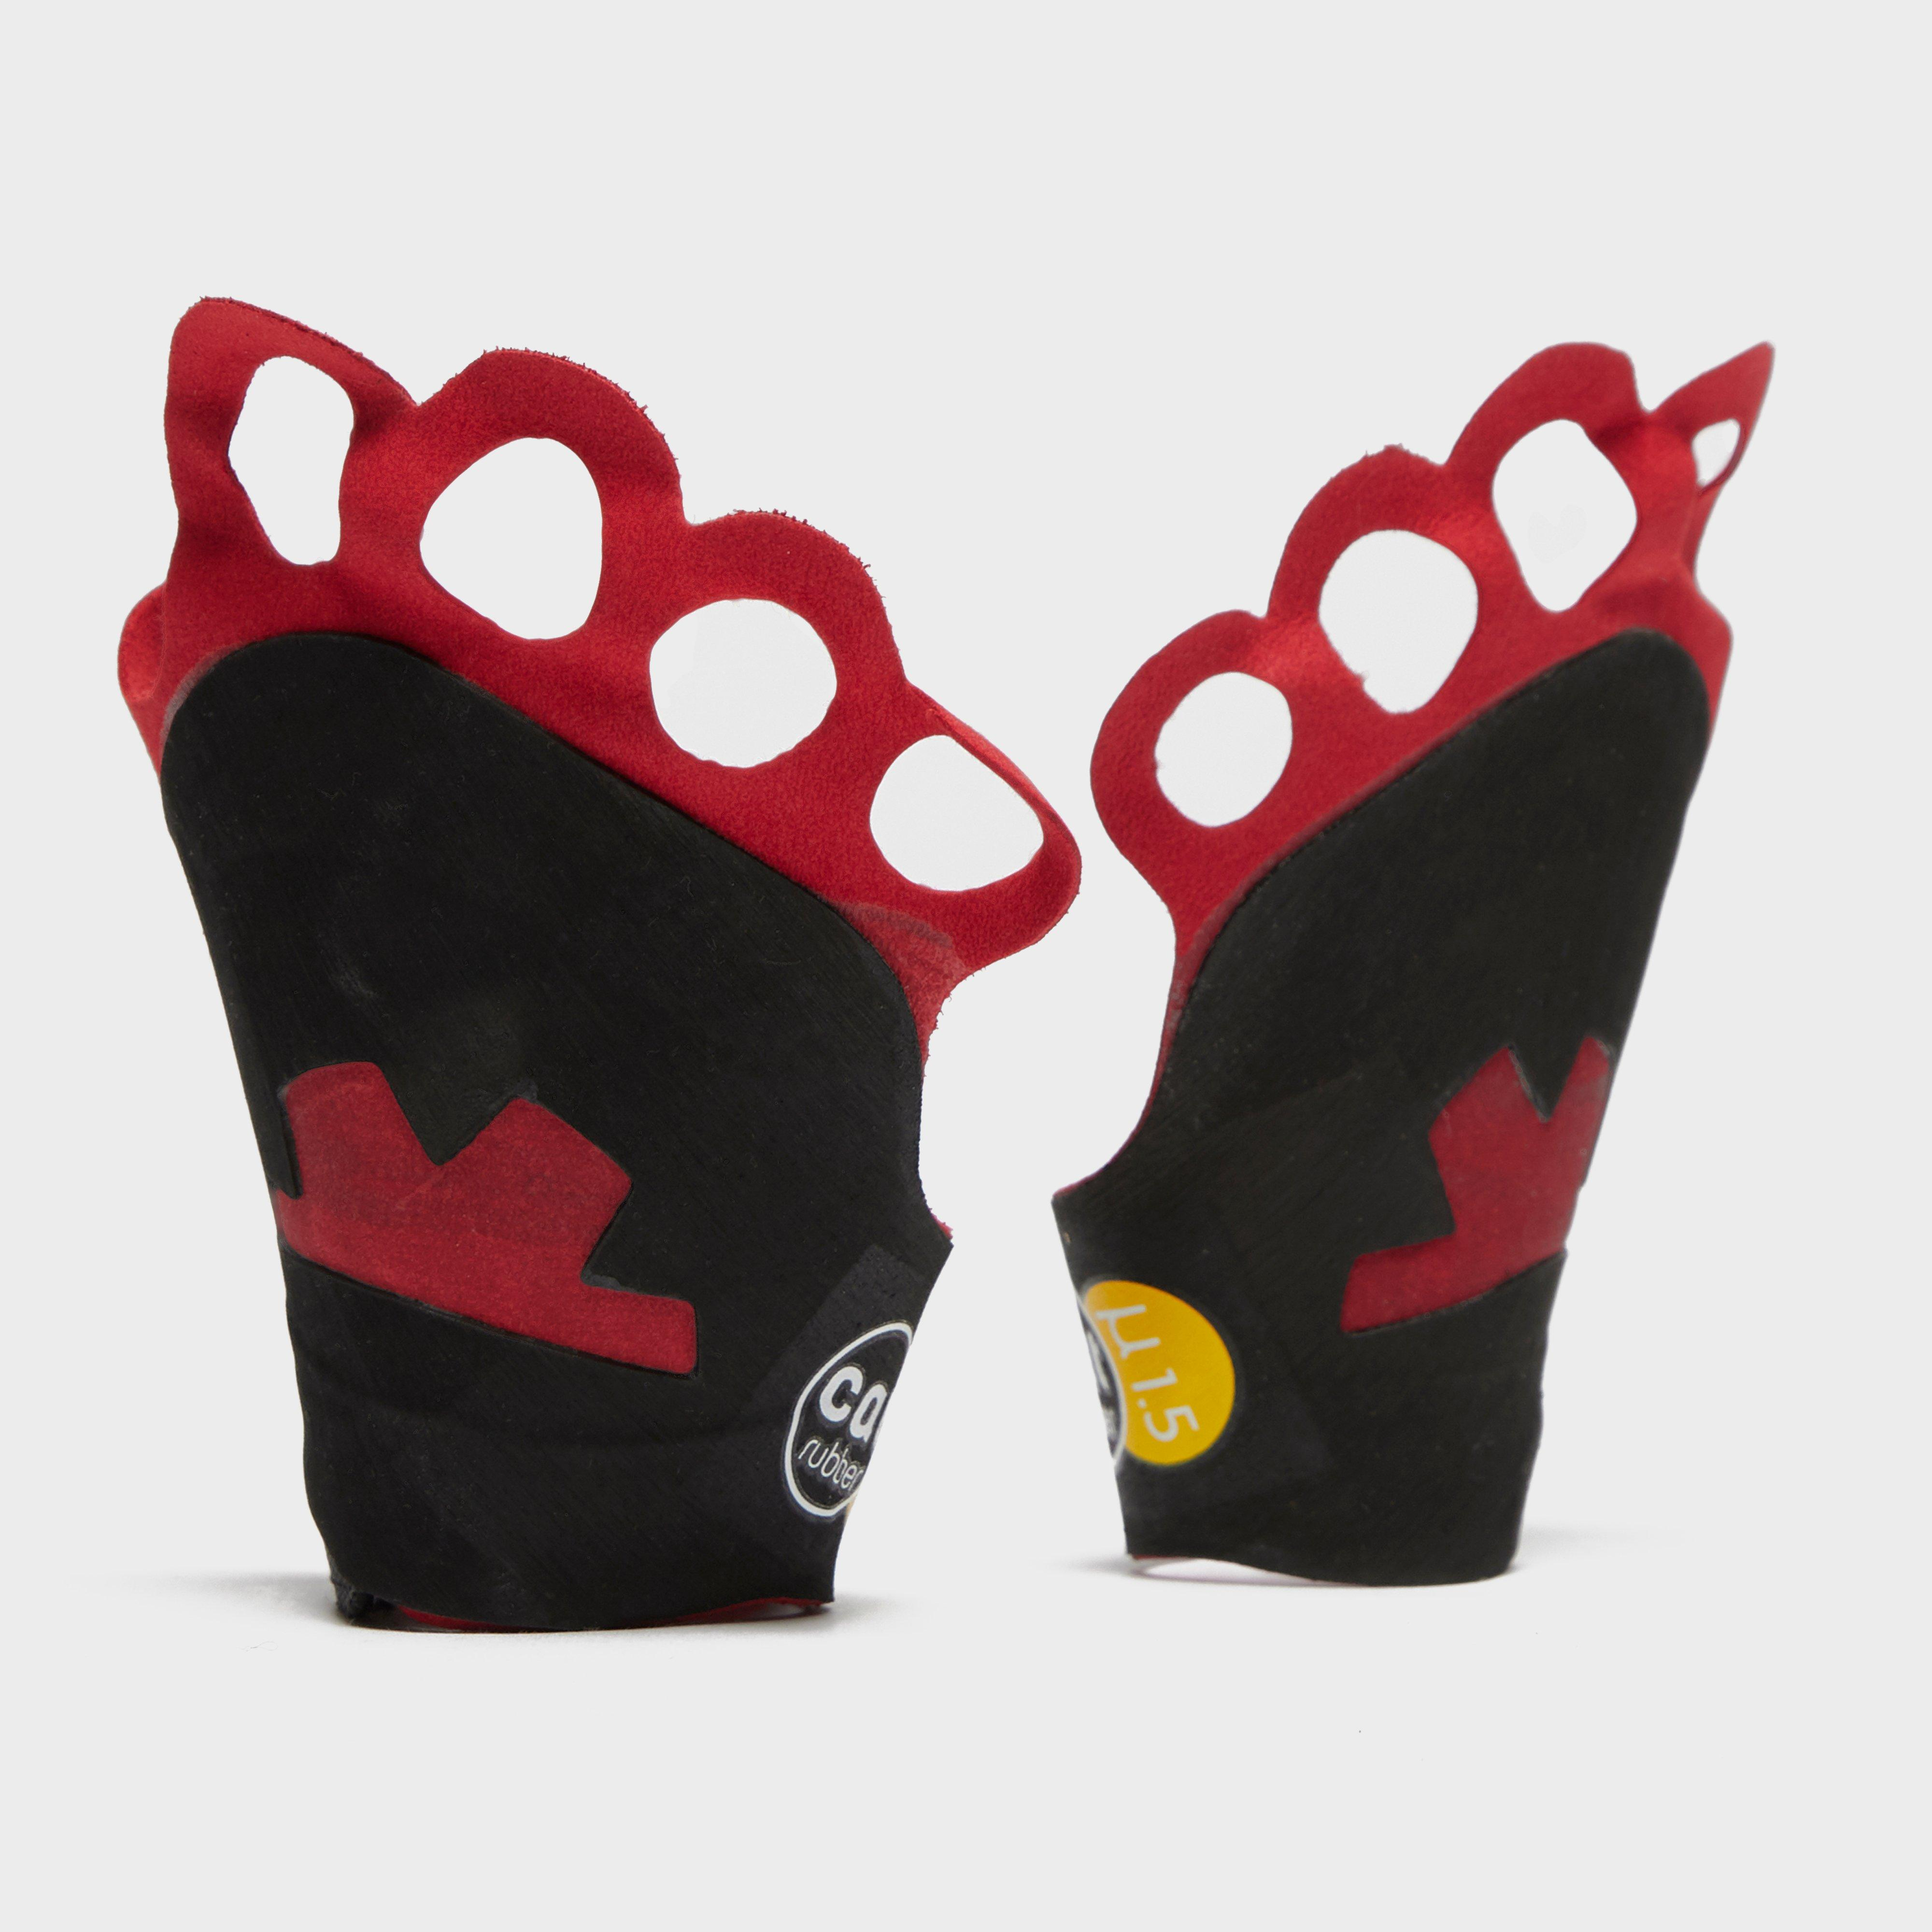 Ocun Crack Gloves - Red/Red, Red